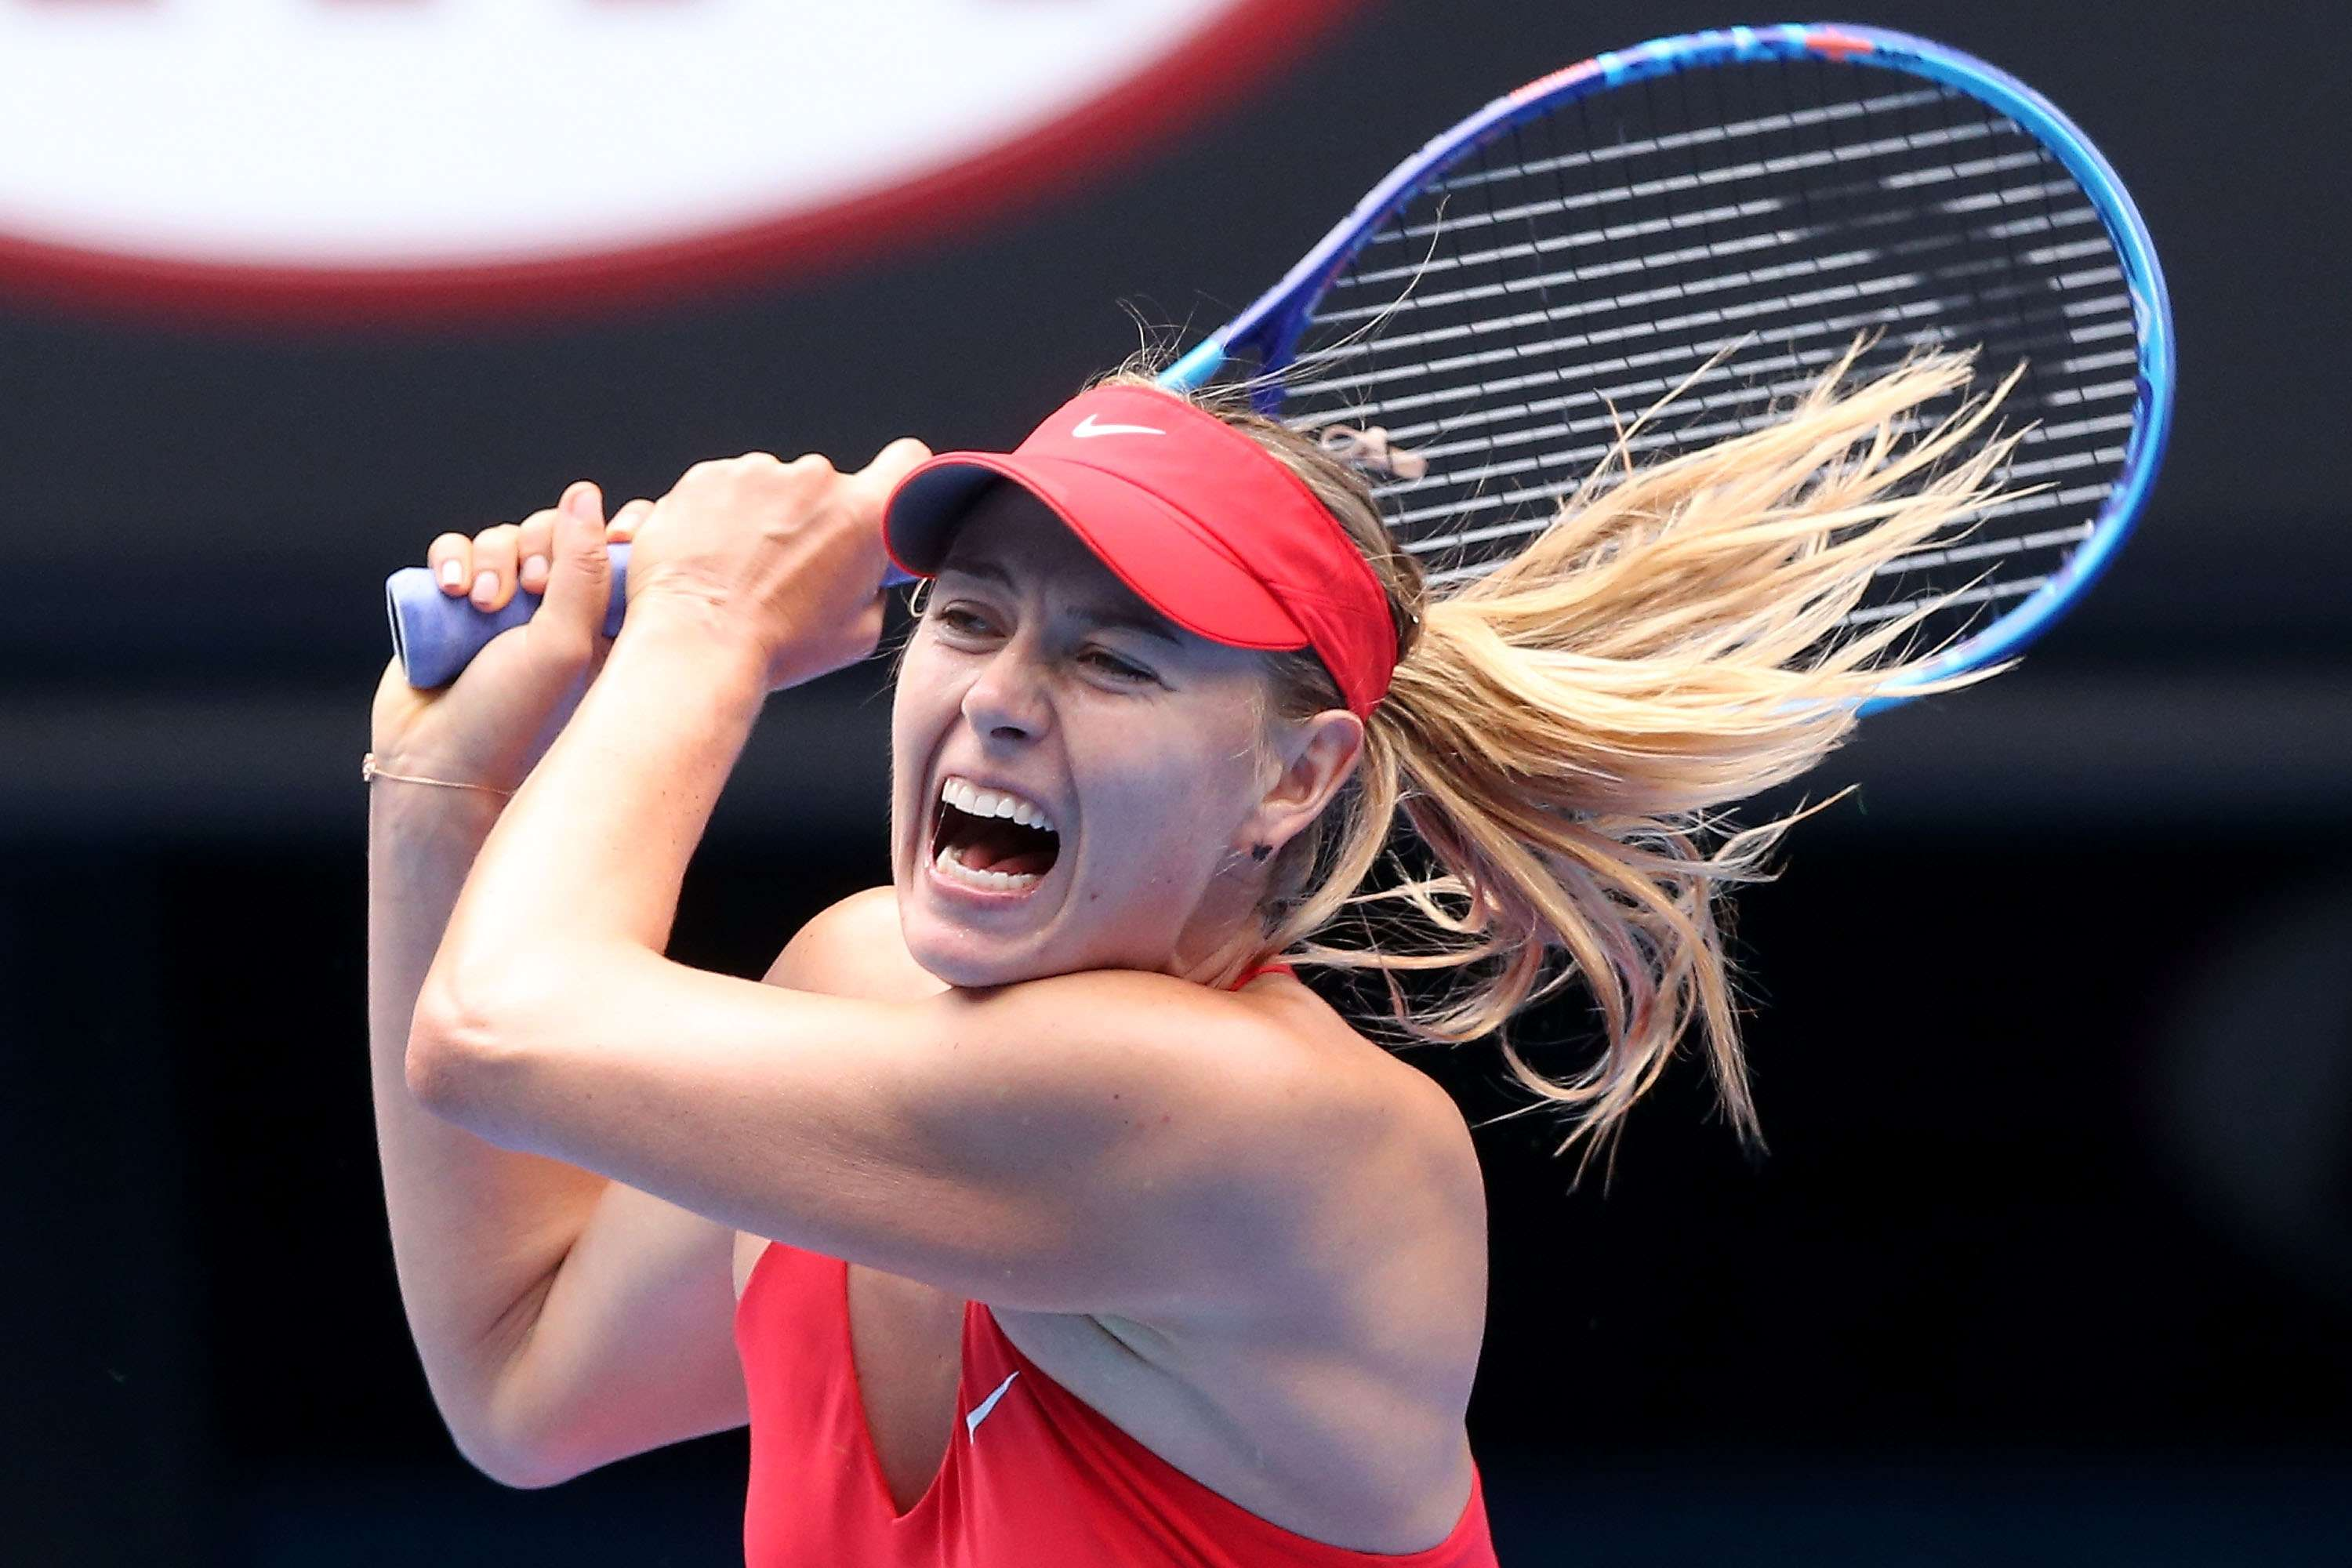 Sharapova quiere vencer a Serena Williams en la final del Abierto de Australia. Foto: Getty Images